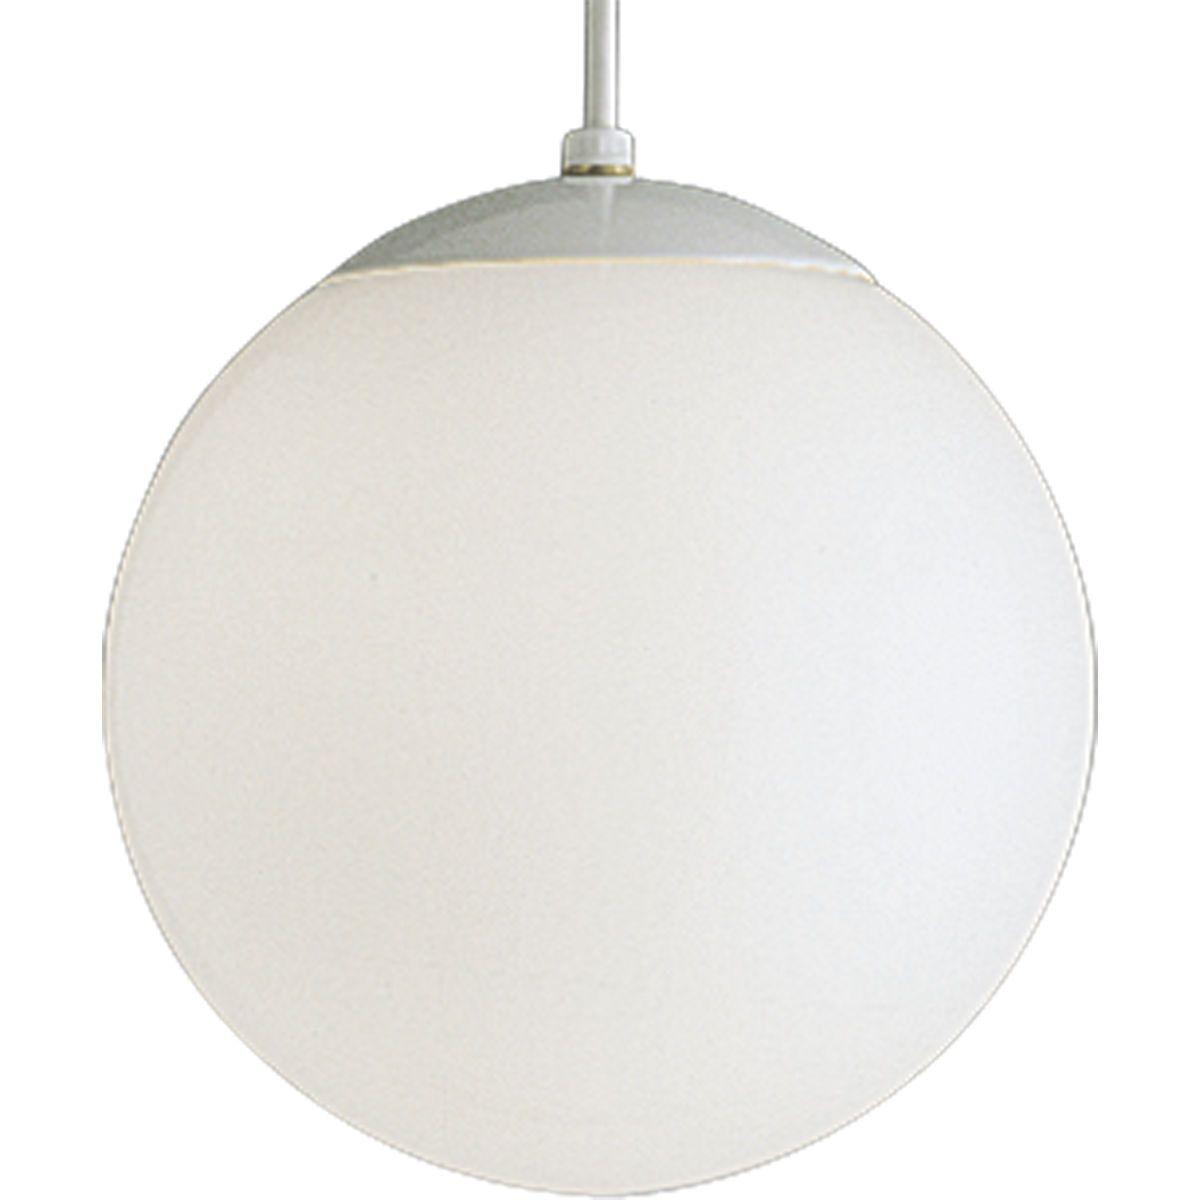 Features Pendant Cord Is Straight Product Type Globe Pendant Style Contemporary Modern Shade With Images Globe Pendant Light Pendant Lighting Pendant Light